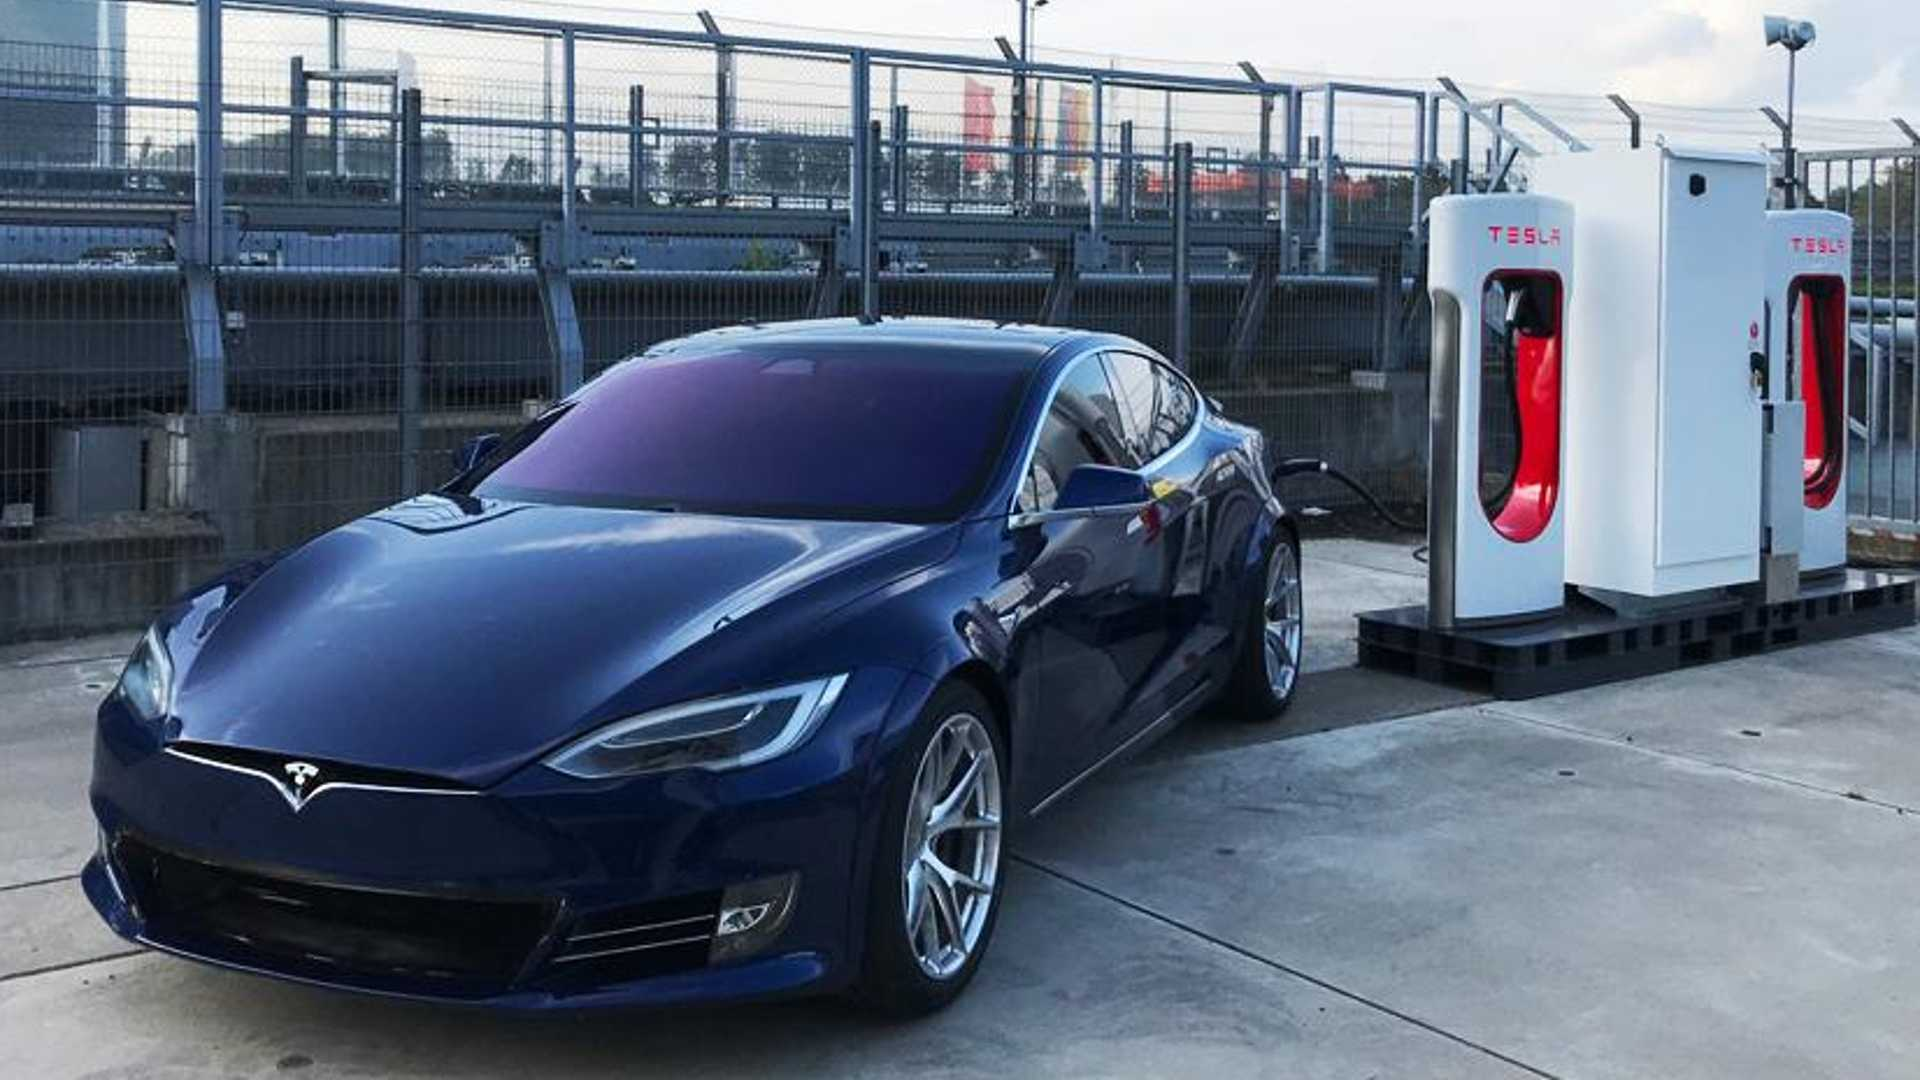 Tesla installs Supercharger at Nurburgring to 'refuel' test cars